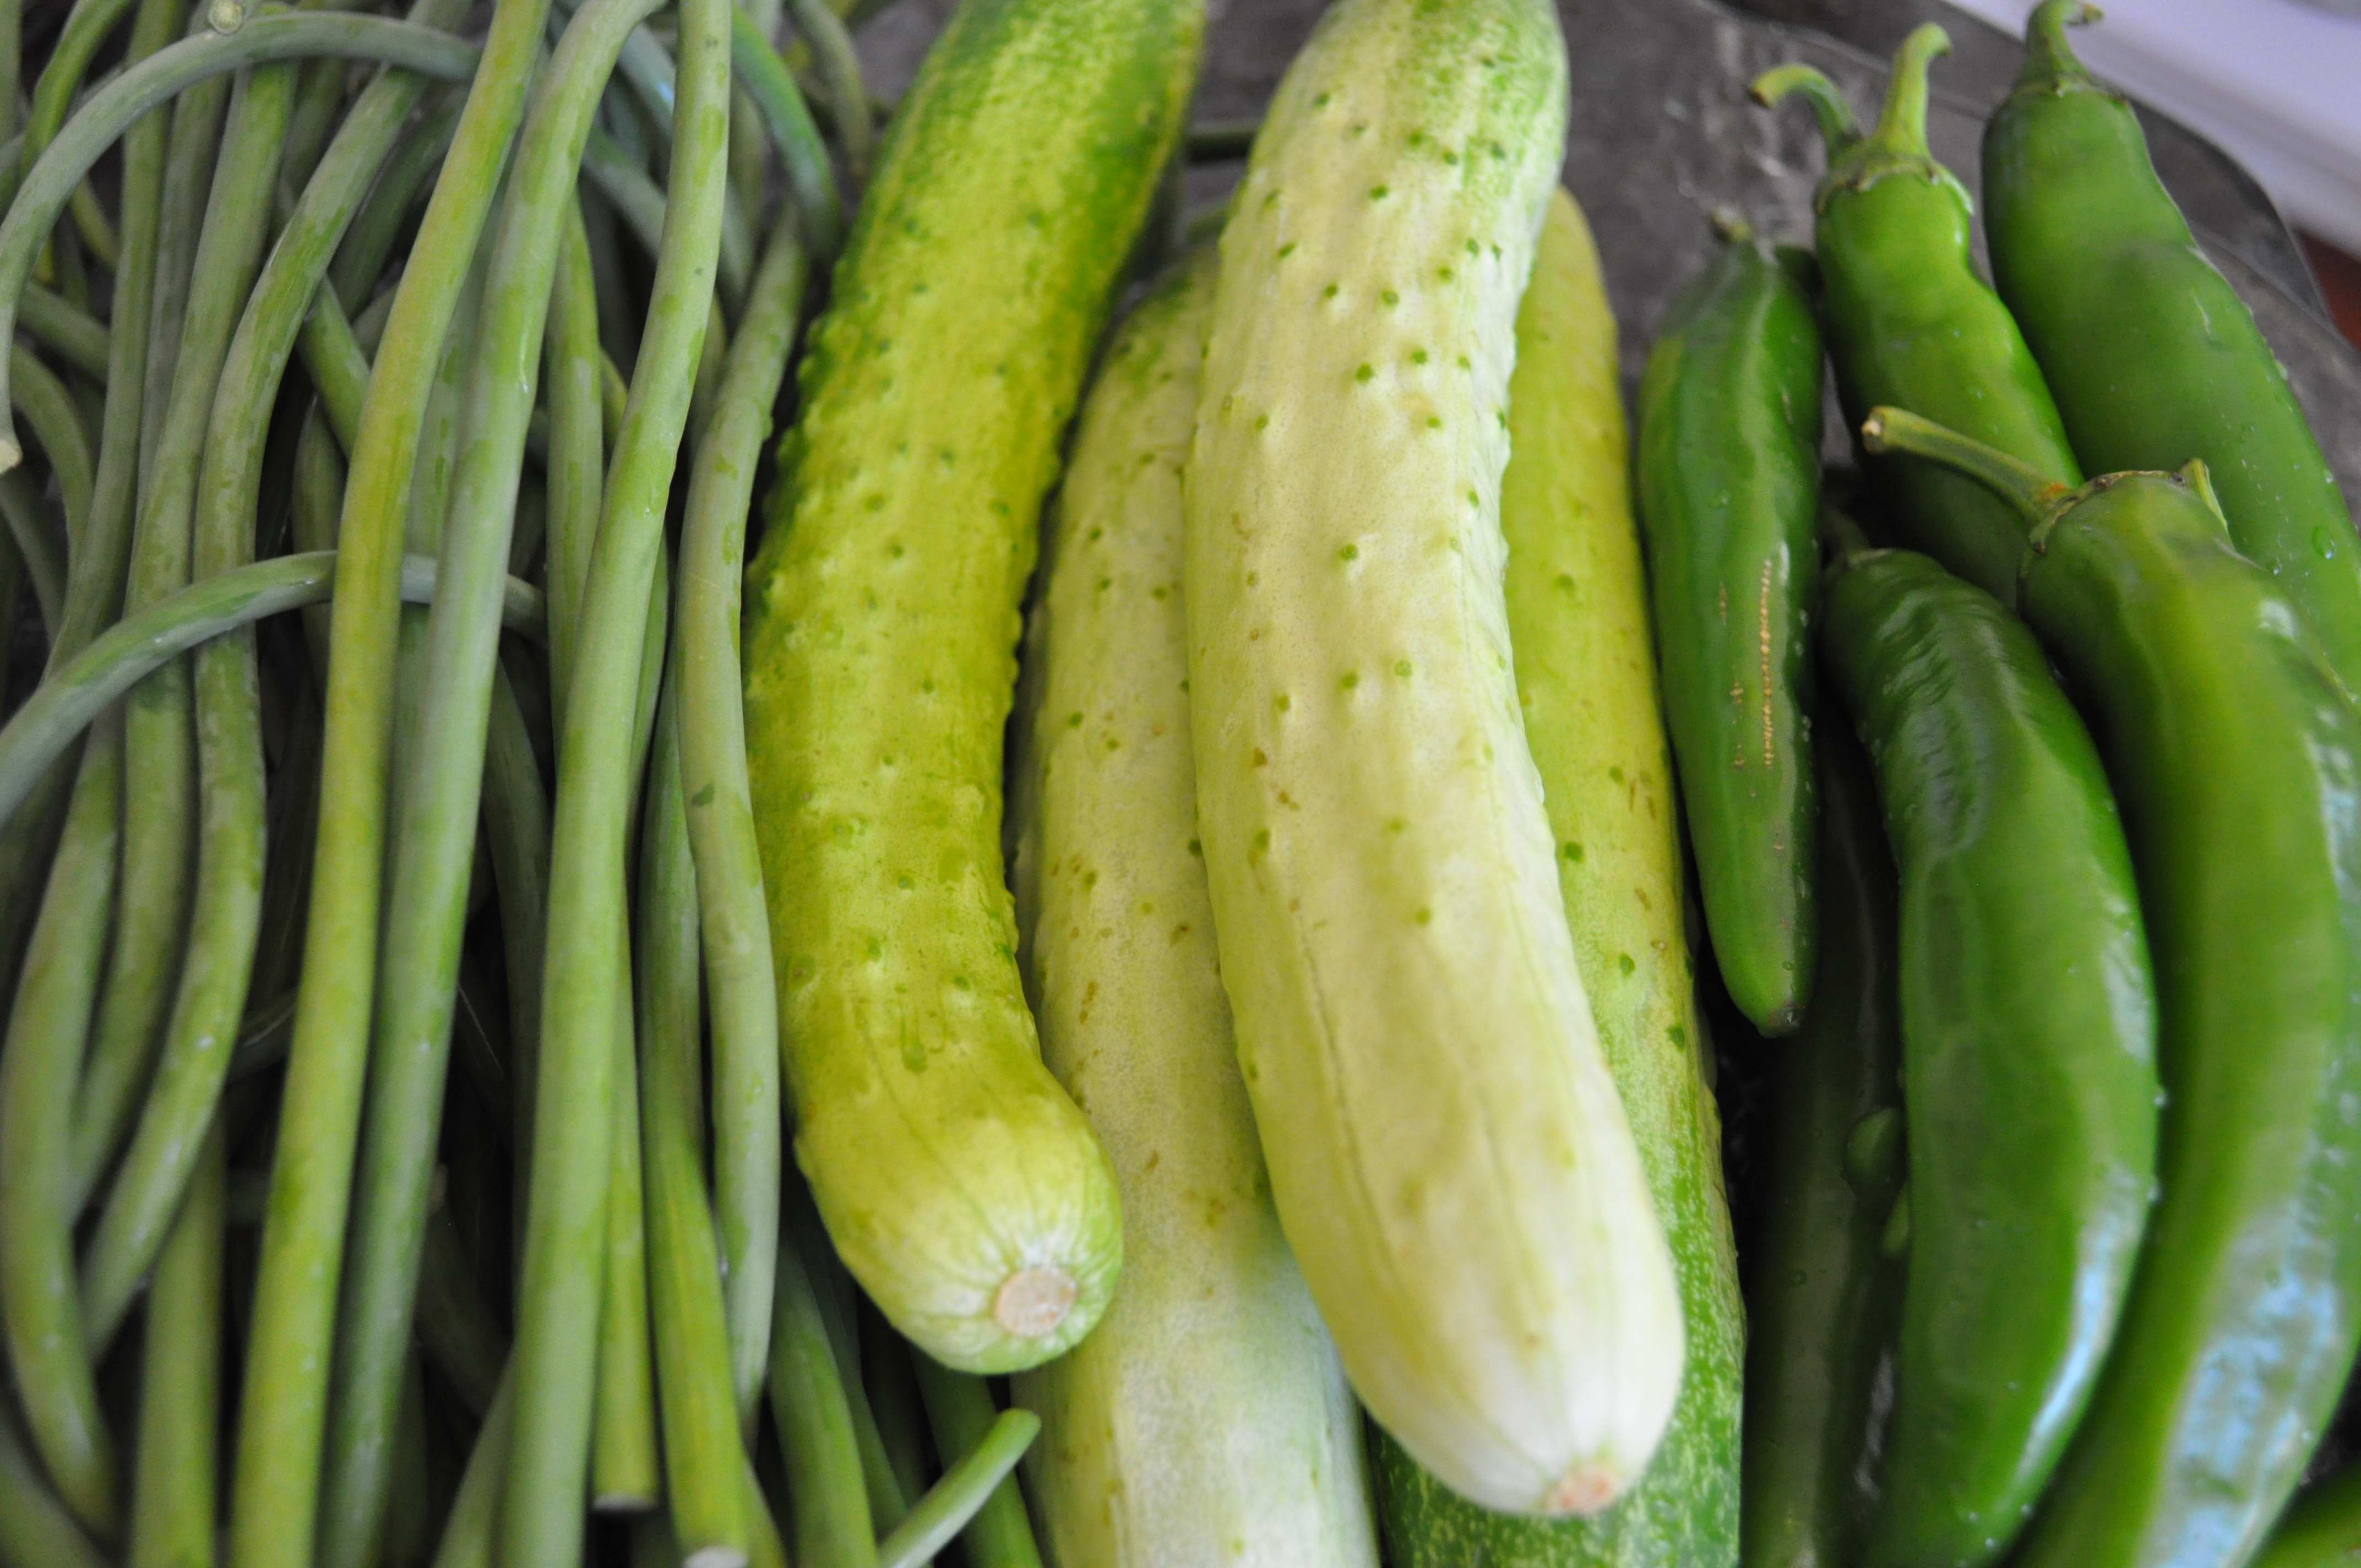 garlic stems, cucumbers, green chili peppers